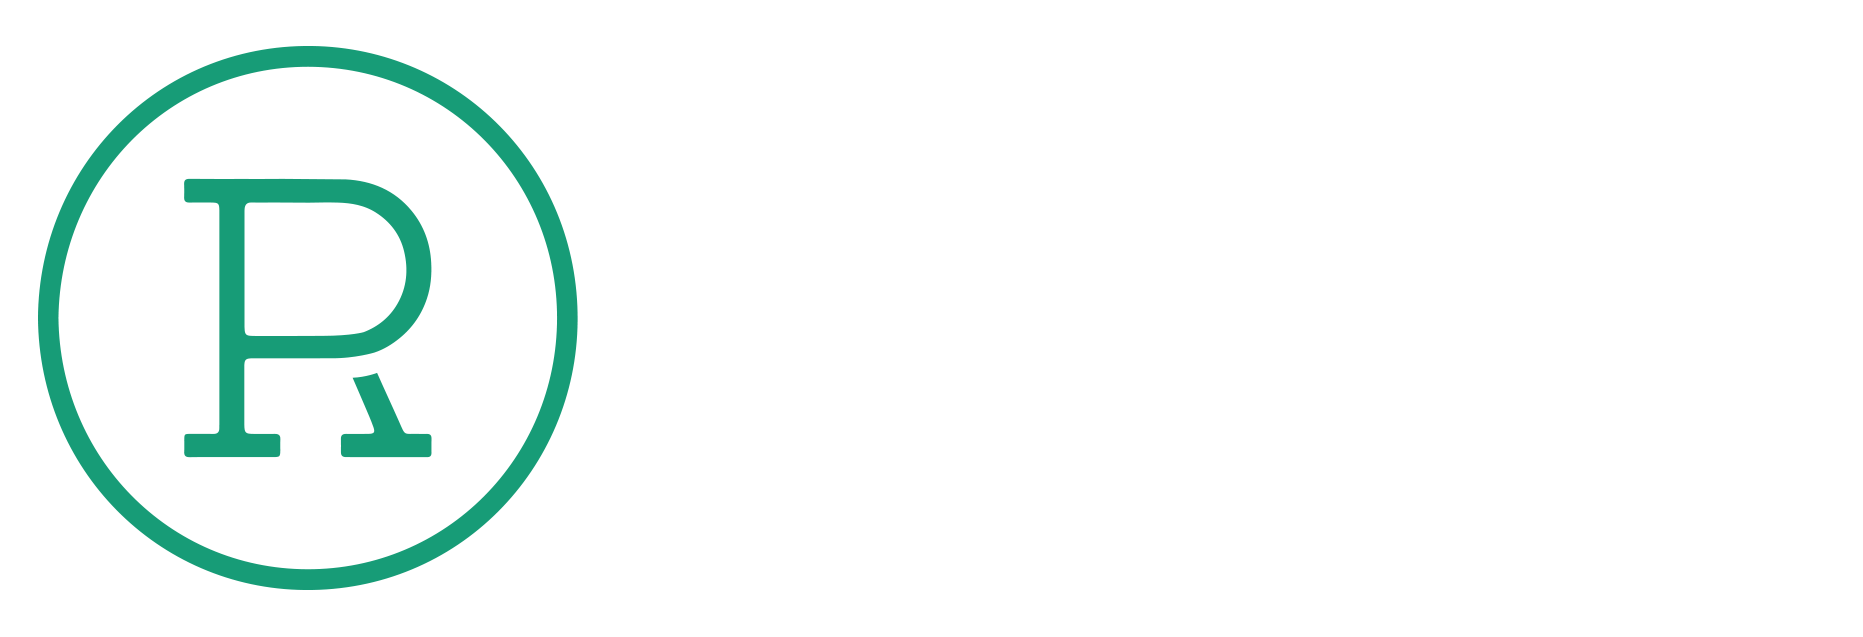 Residual Payments